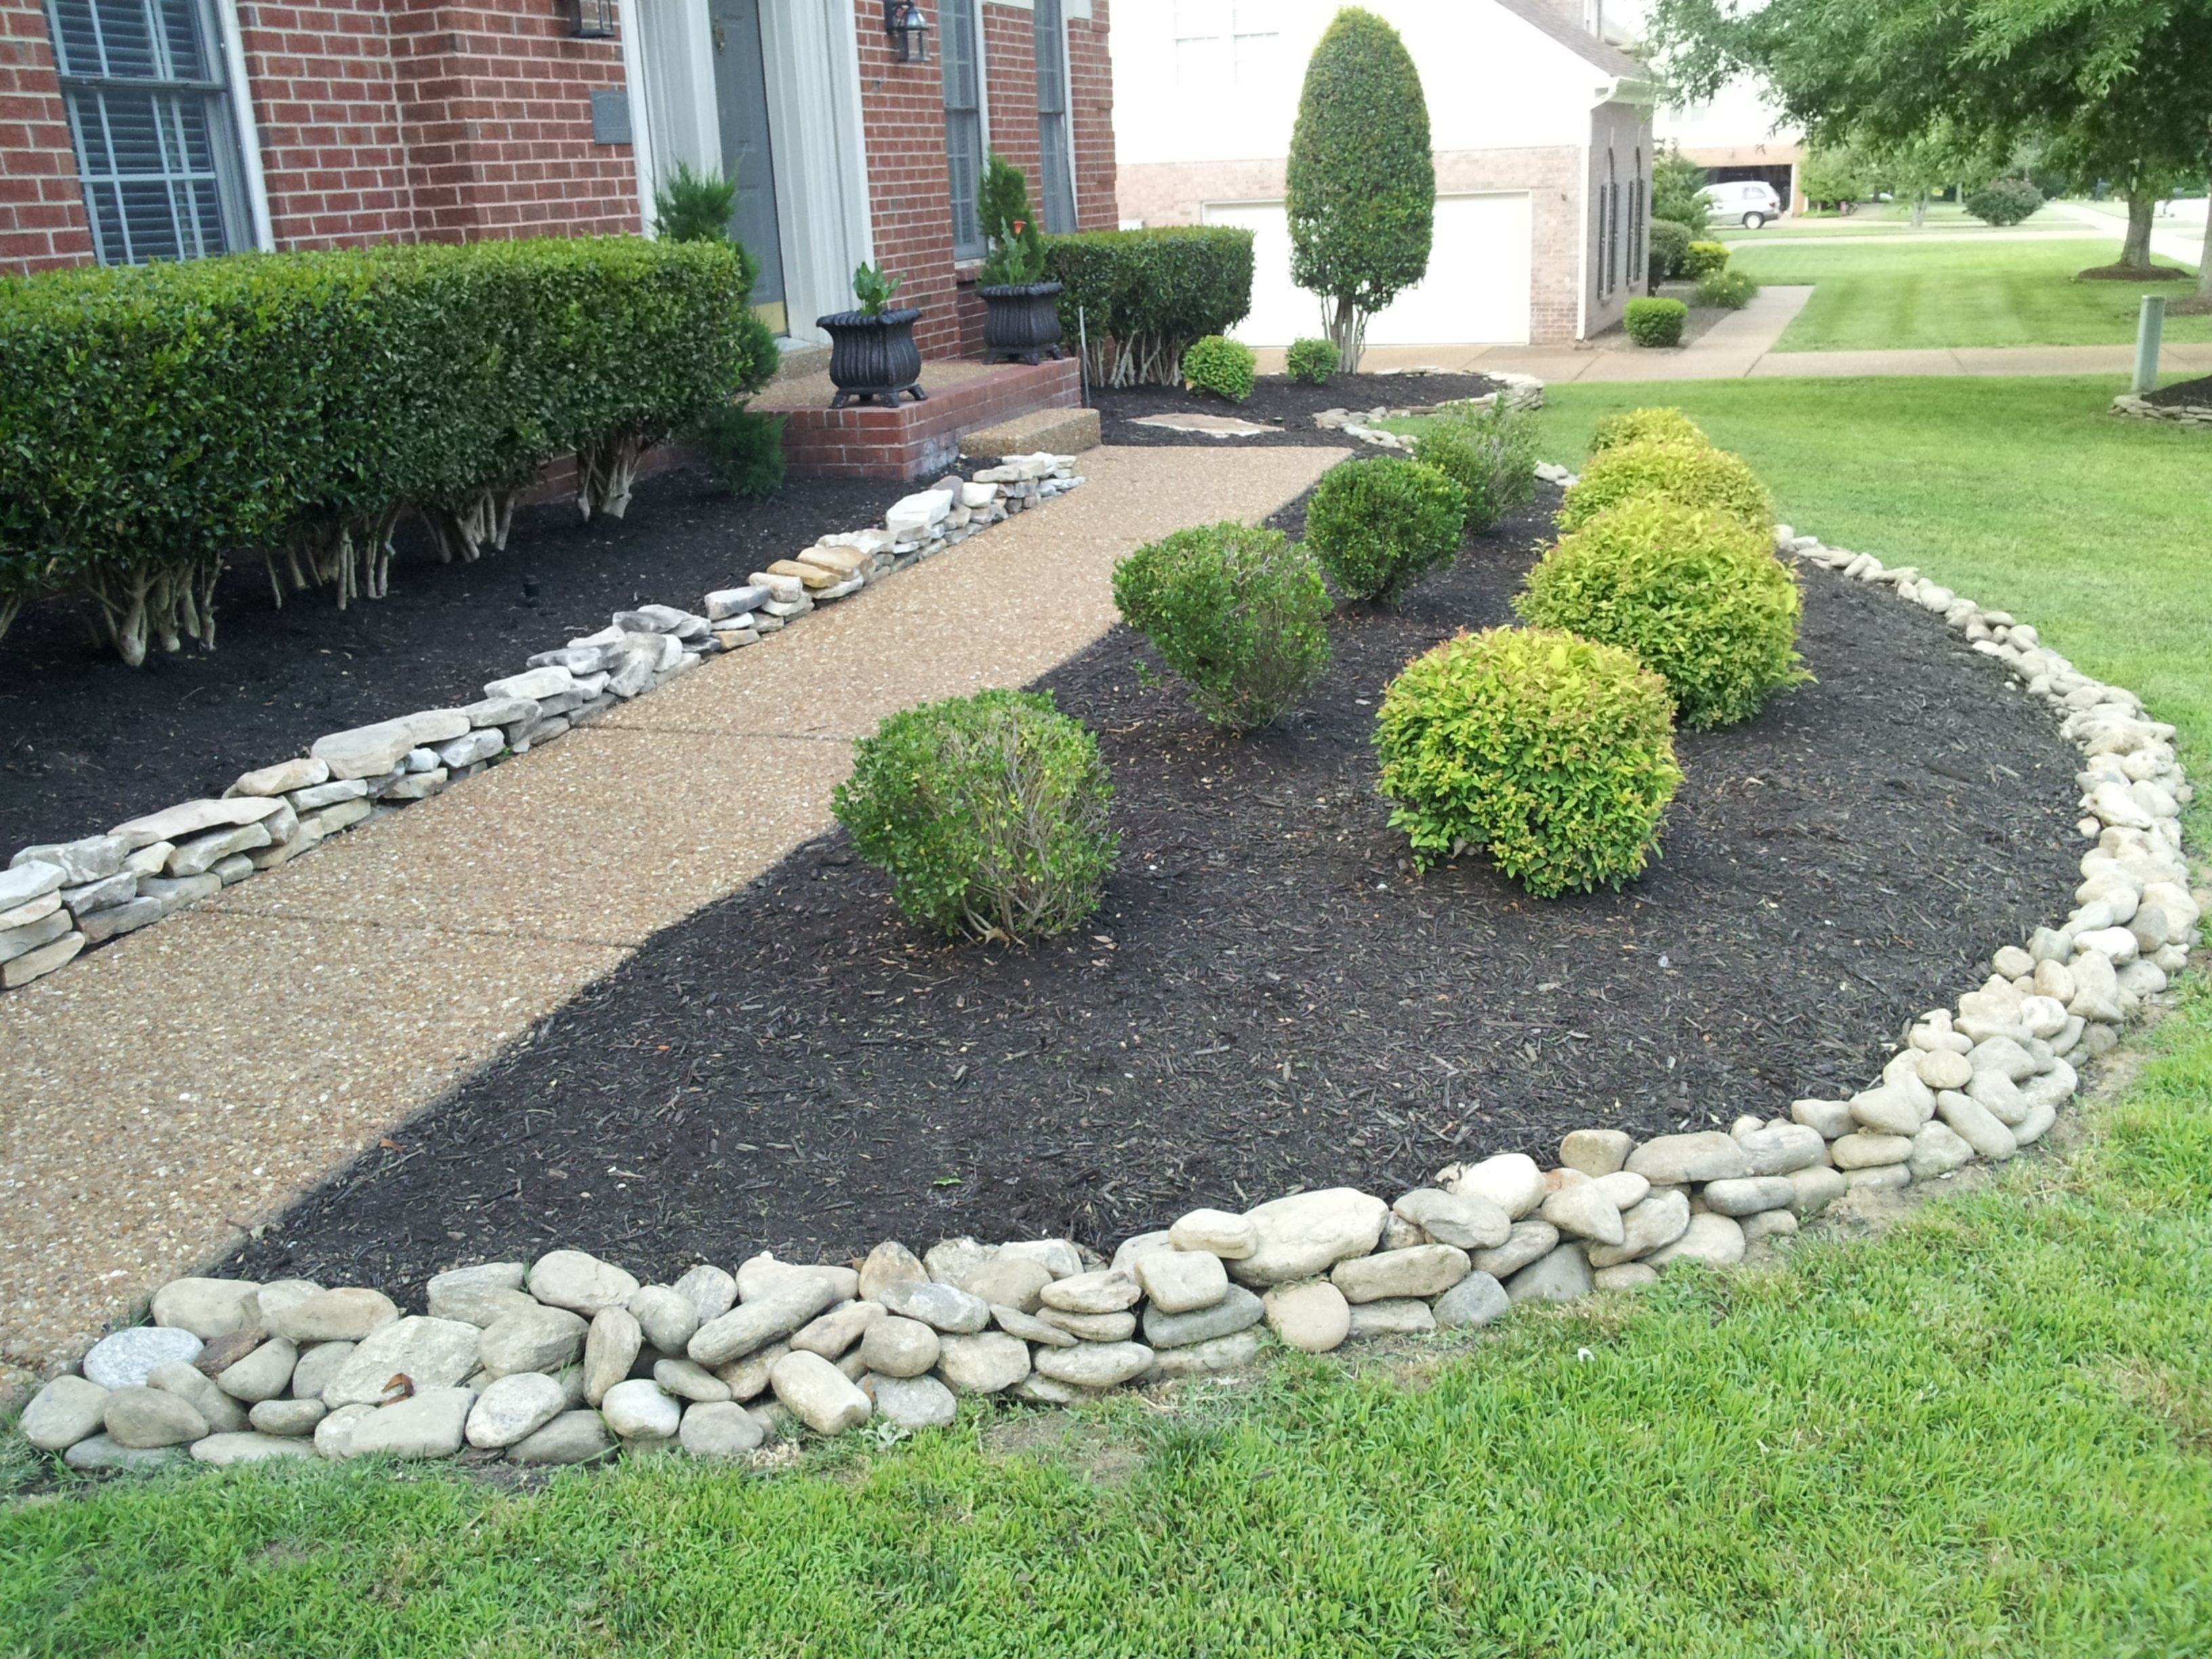 Wonderful Landscaping Design With Gravel 2103 Landscaping With Rocks Stone Landscaping Rock Garden Landscaping